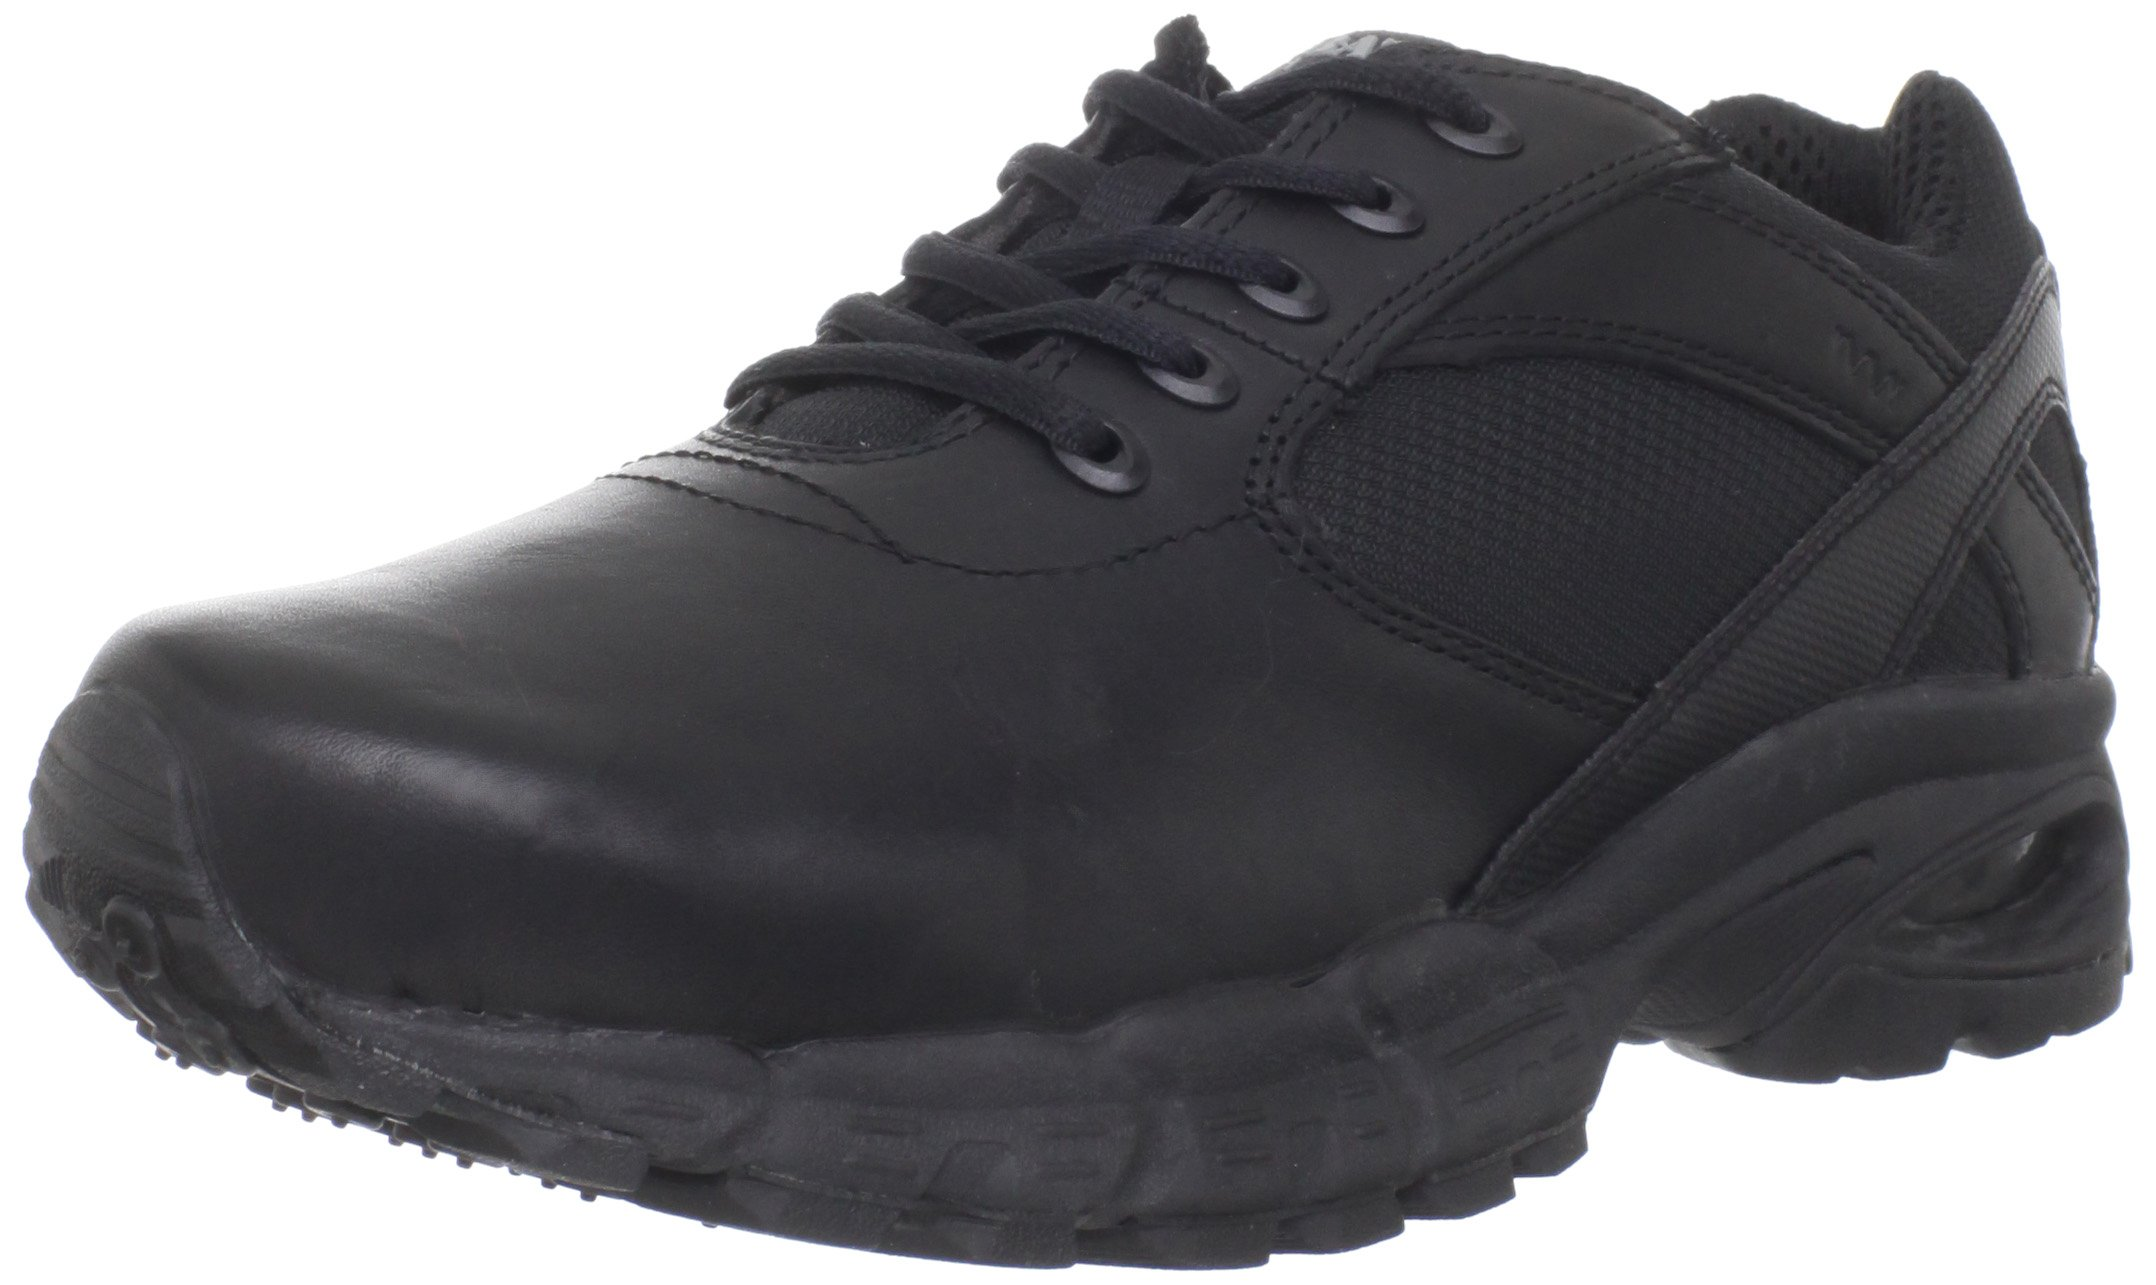 Bates Men's Delta Sport Work Shoe,Black,5 M US by Bates